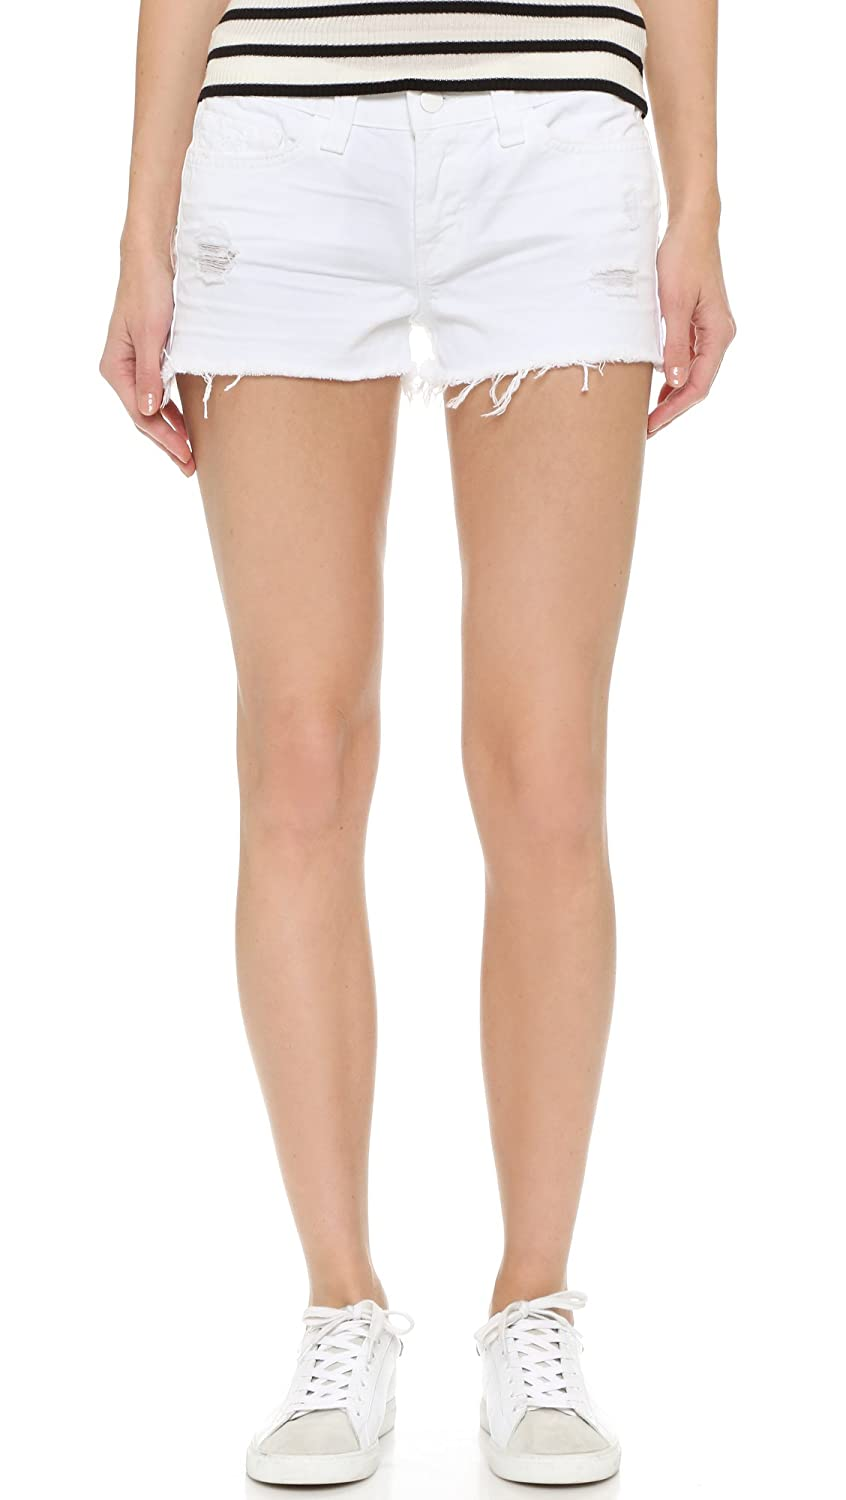 J Brand Women's 1046 Cutoff Shorts